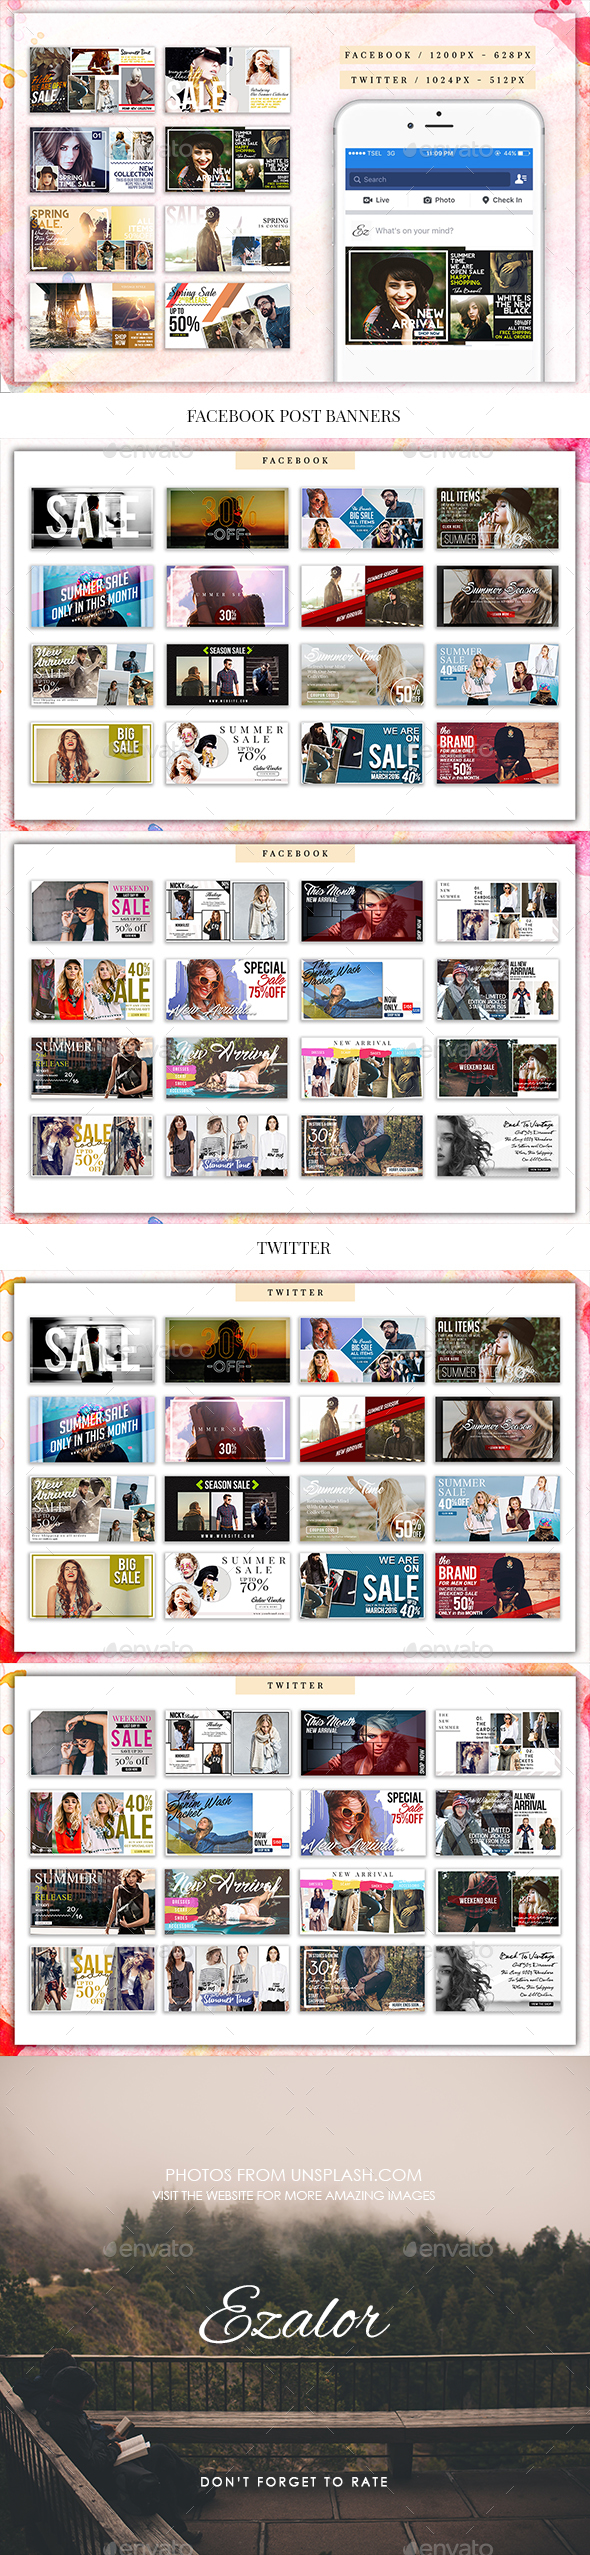 Fashion Facebook Post Banners - Social Media Web Elements